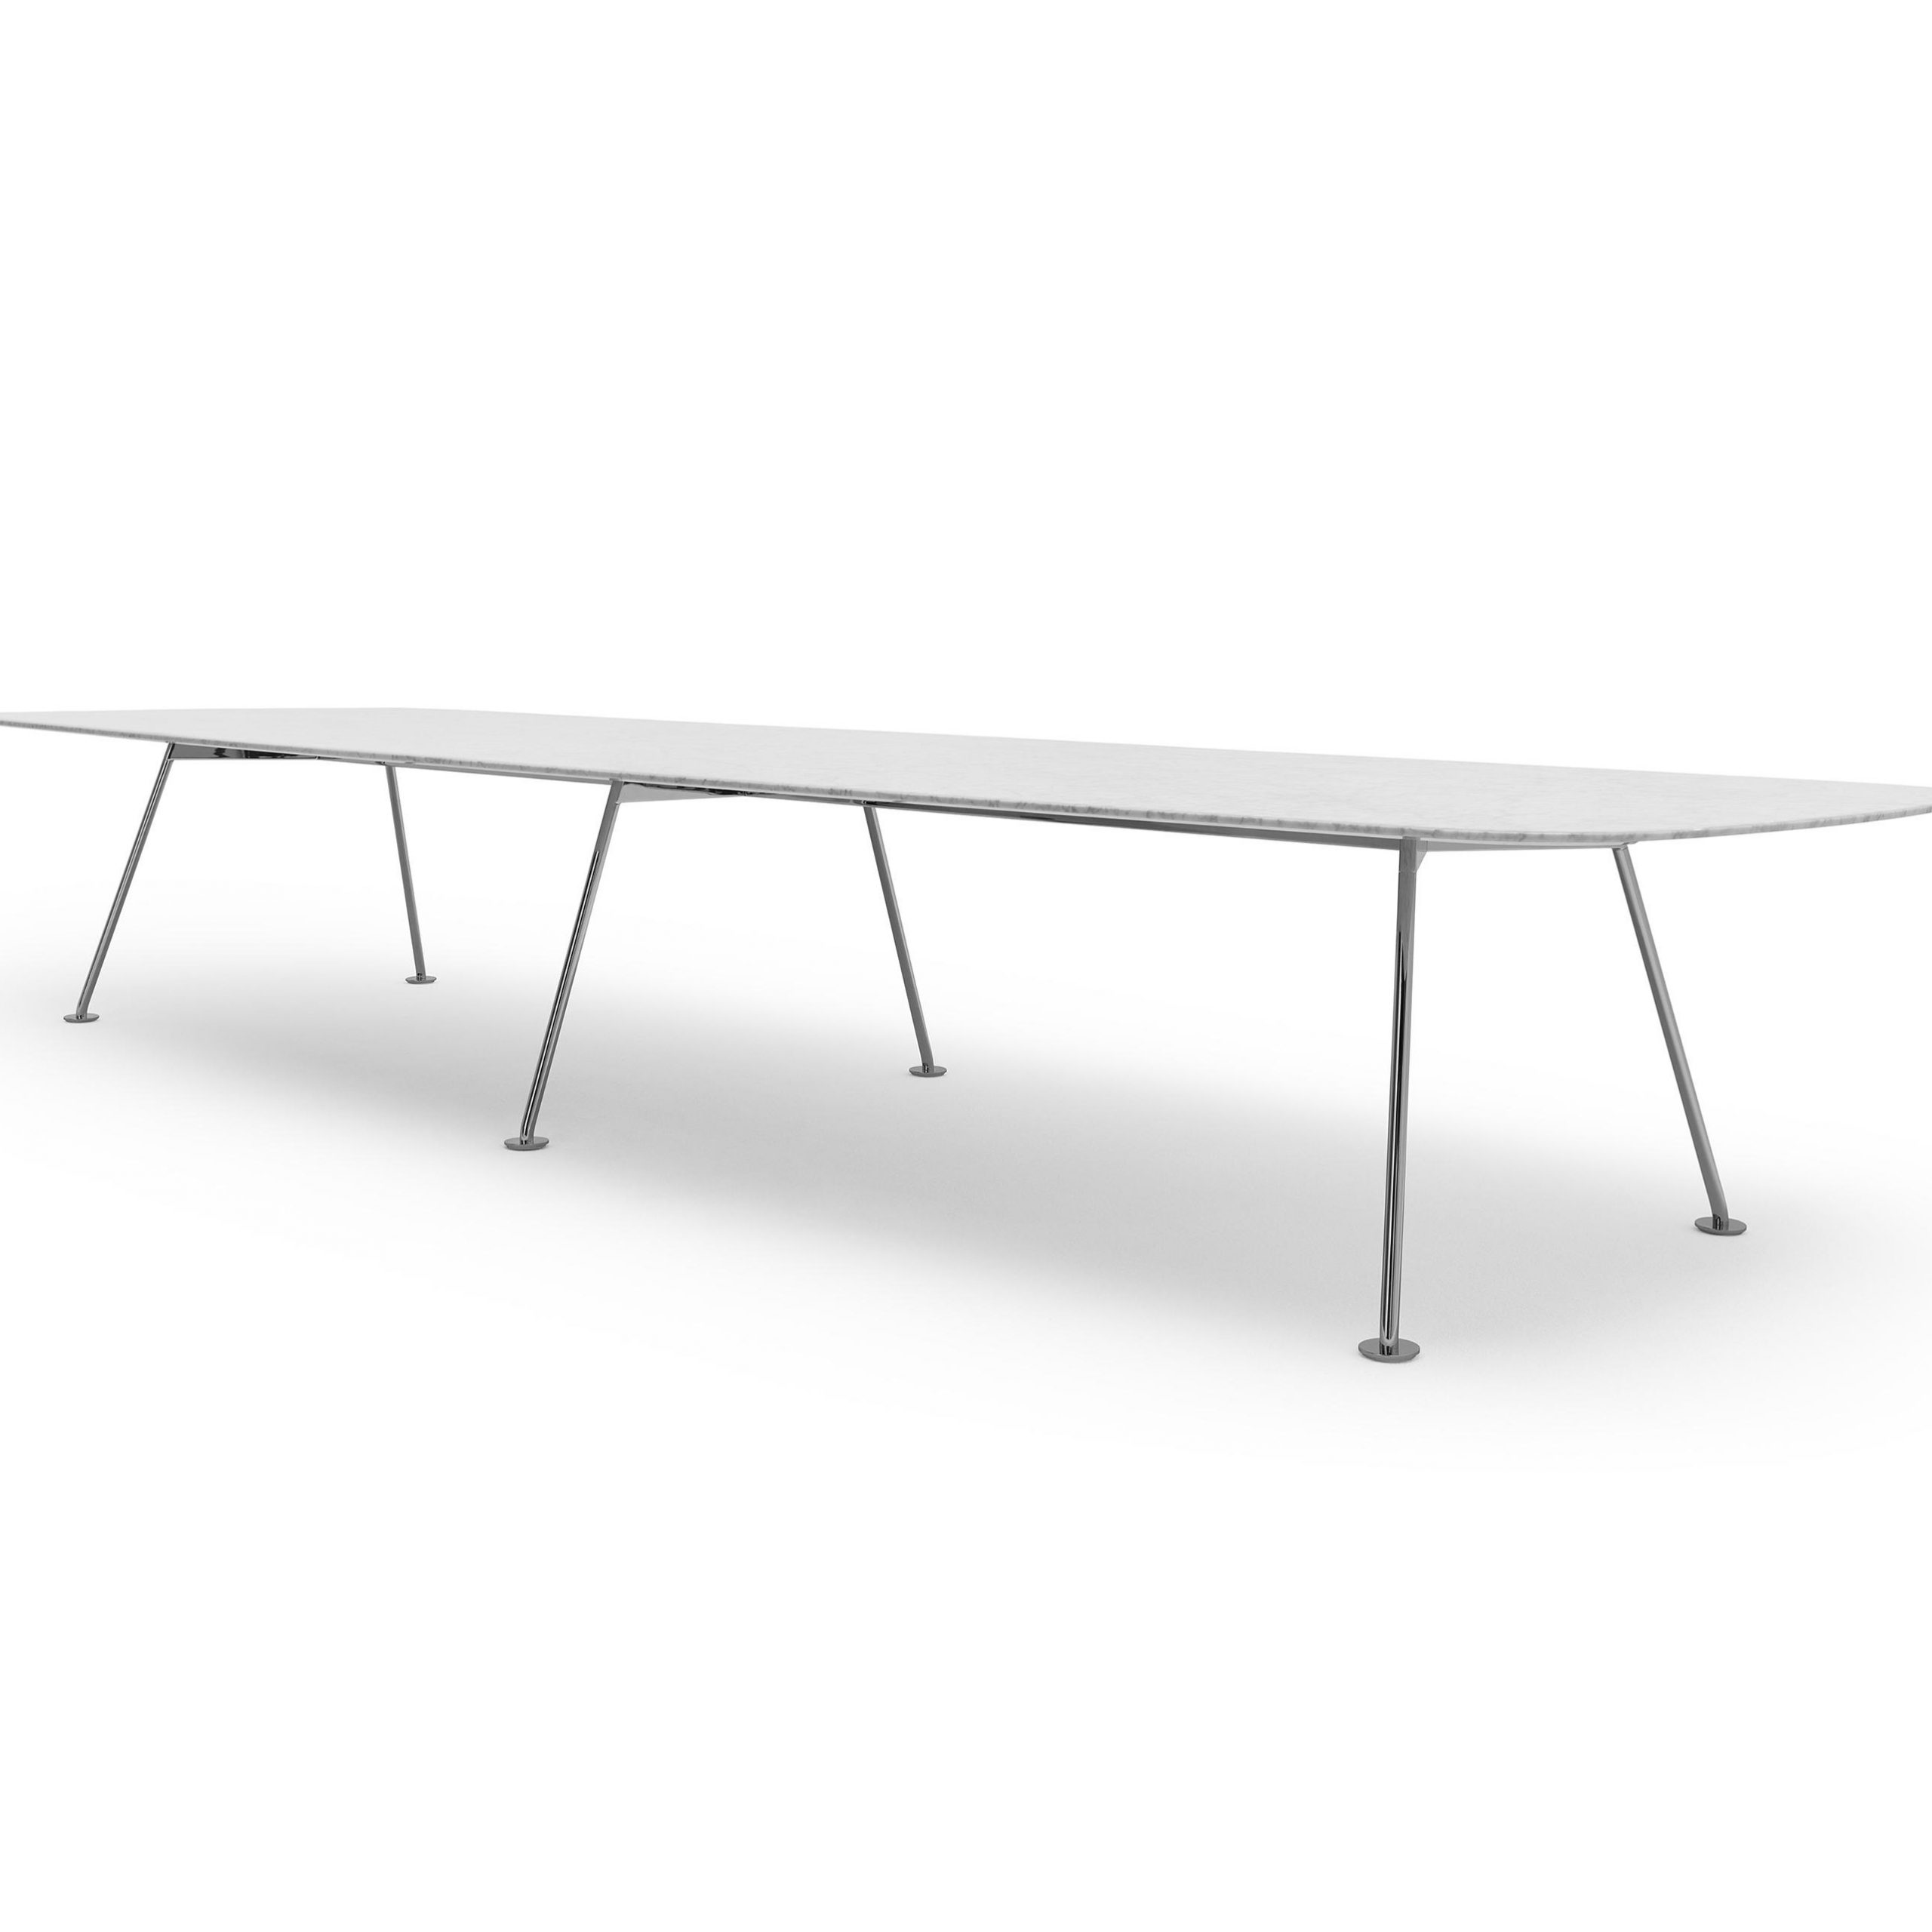 Grasshopper Table & Designer Furniture | Architonic Within 2018 Gray Wash Banks Extending Dining Tables (View 13 of 25)